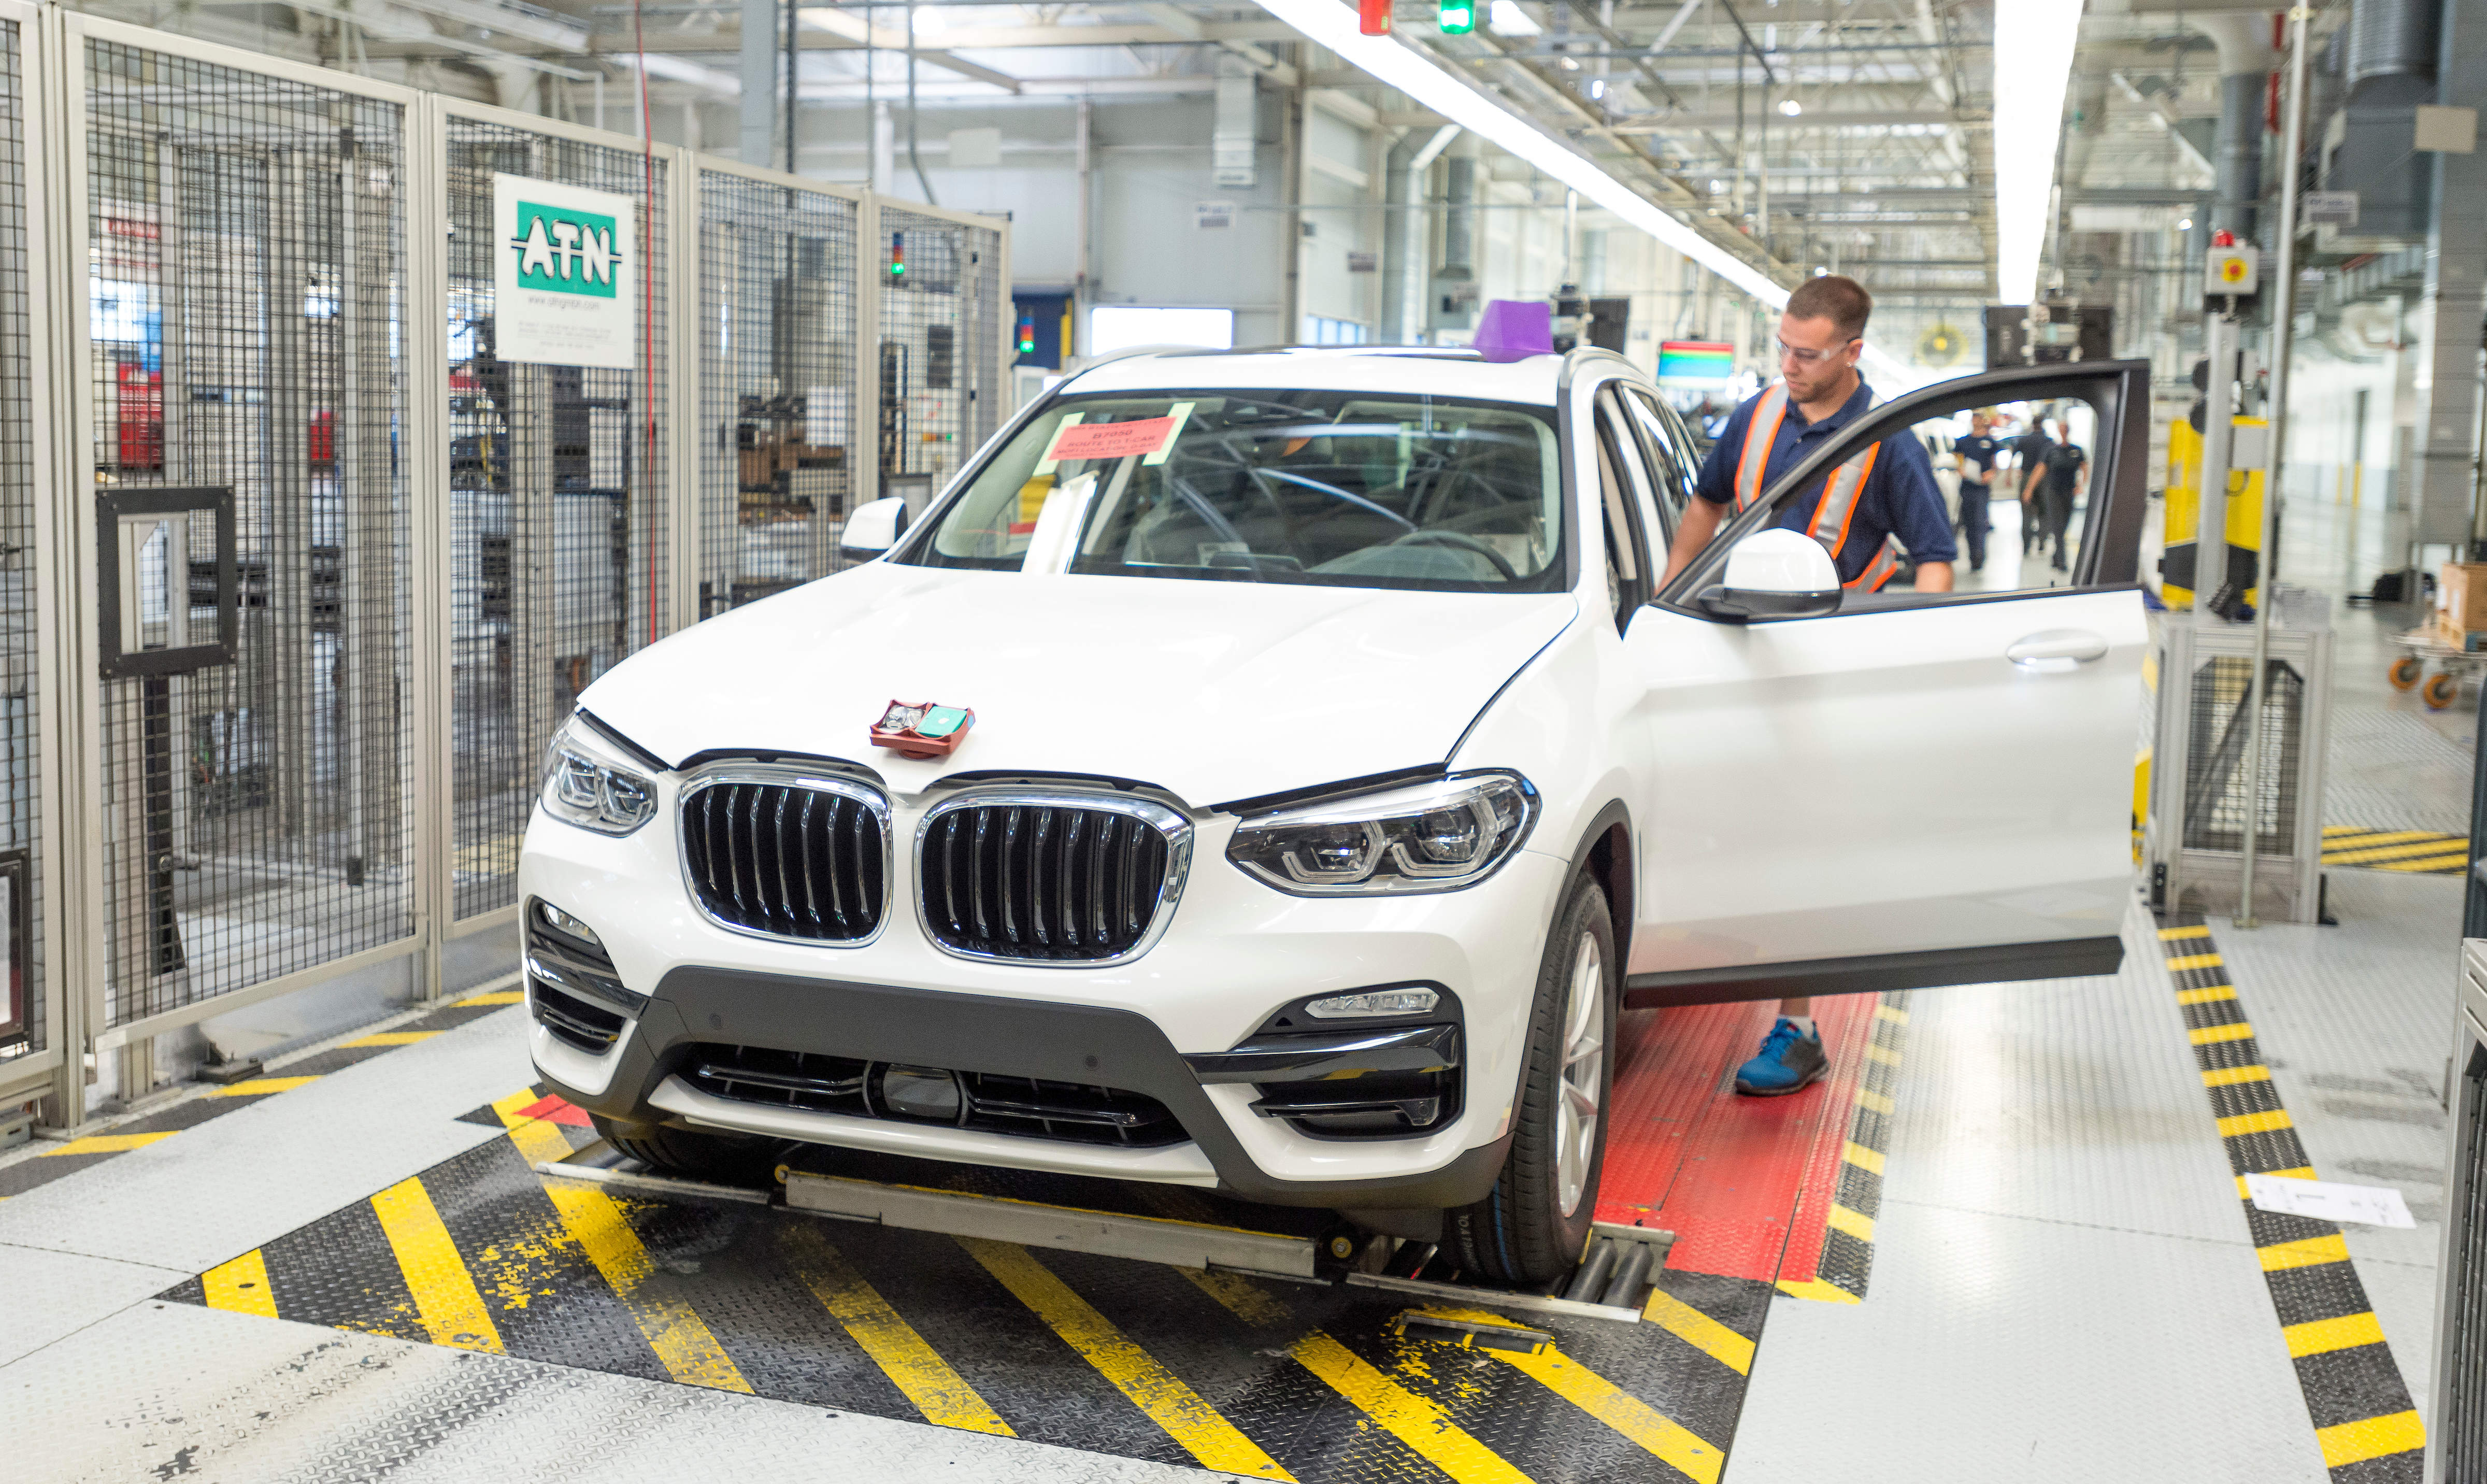 BMW financial services profits rise amid group stagnation